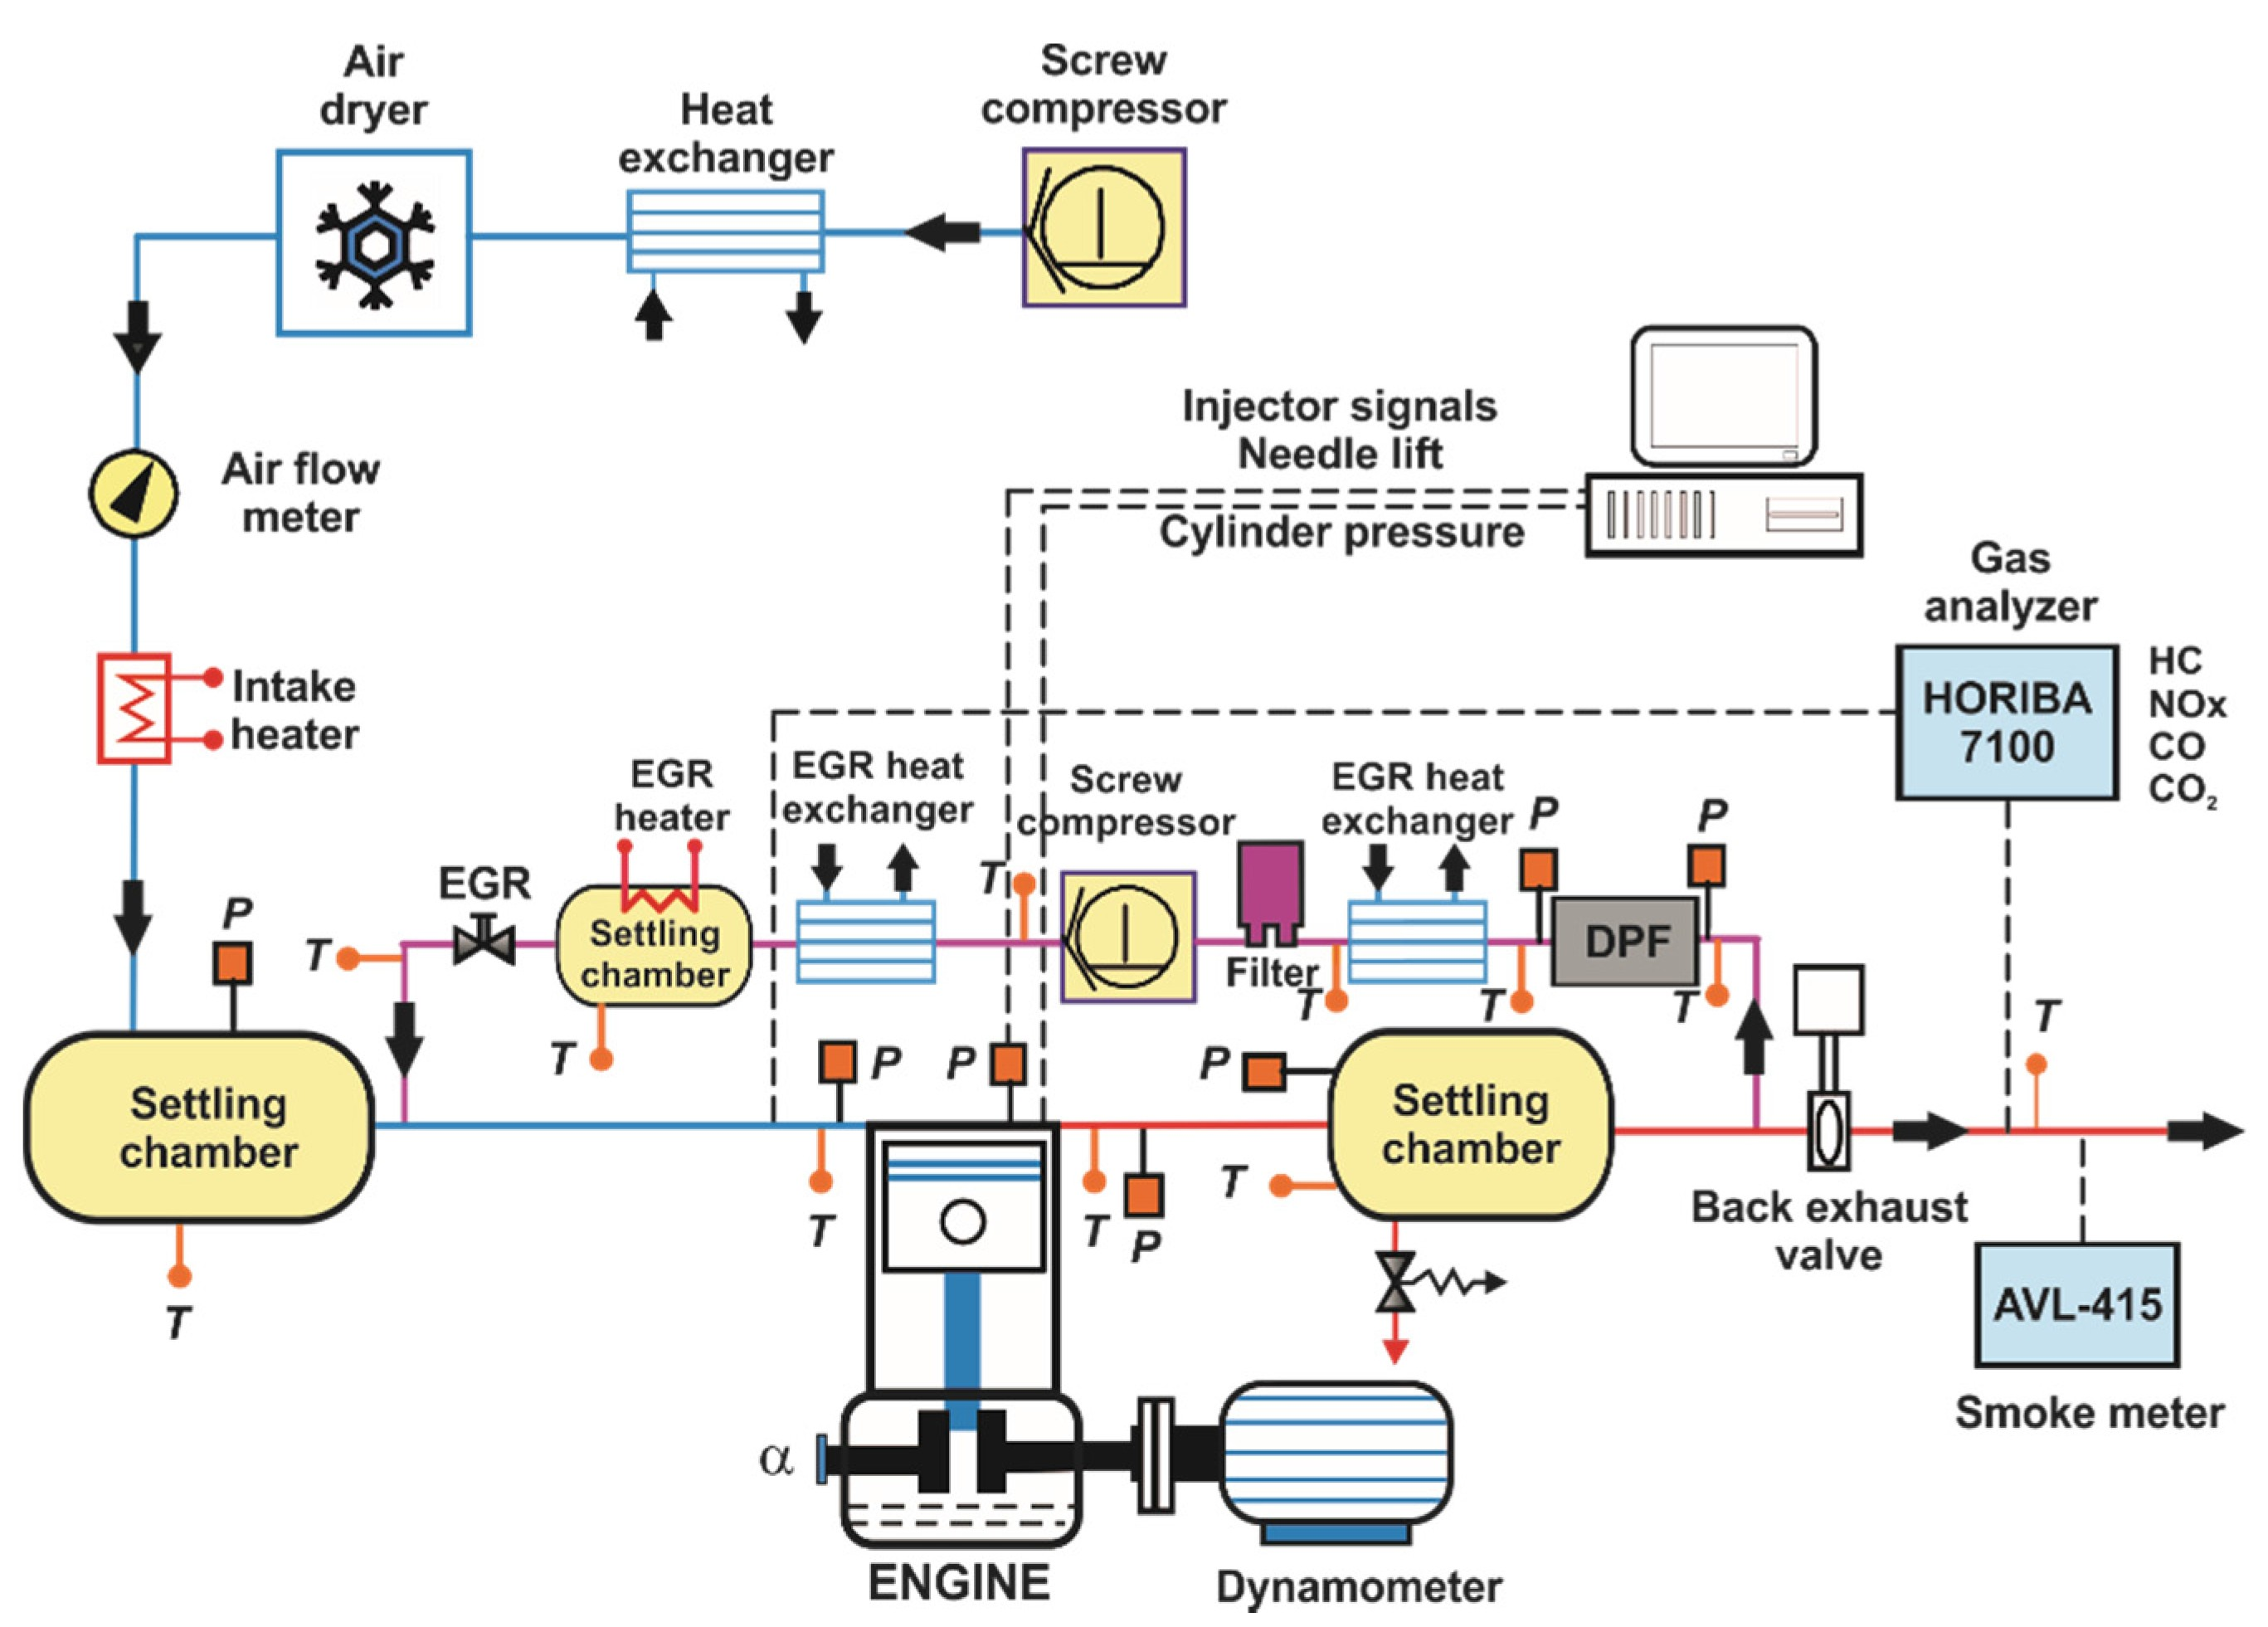 Marine Engine Diagram Sel Generator Control Panel Wiring Ac Applied Sciences Free Full Text Of